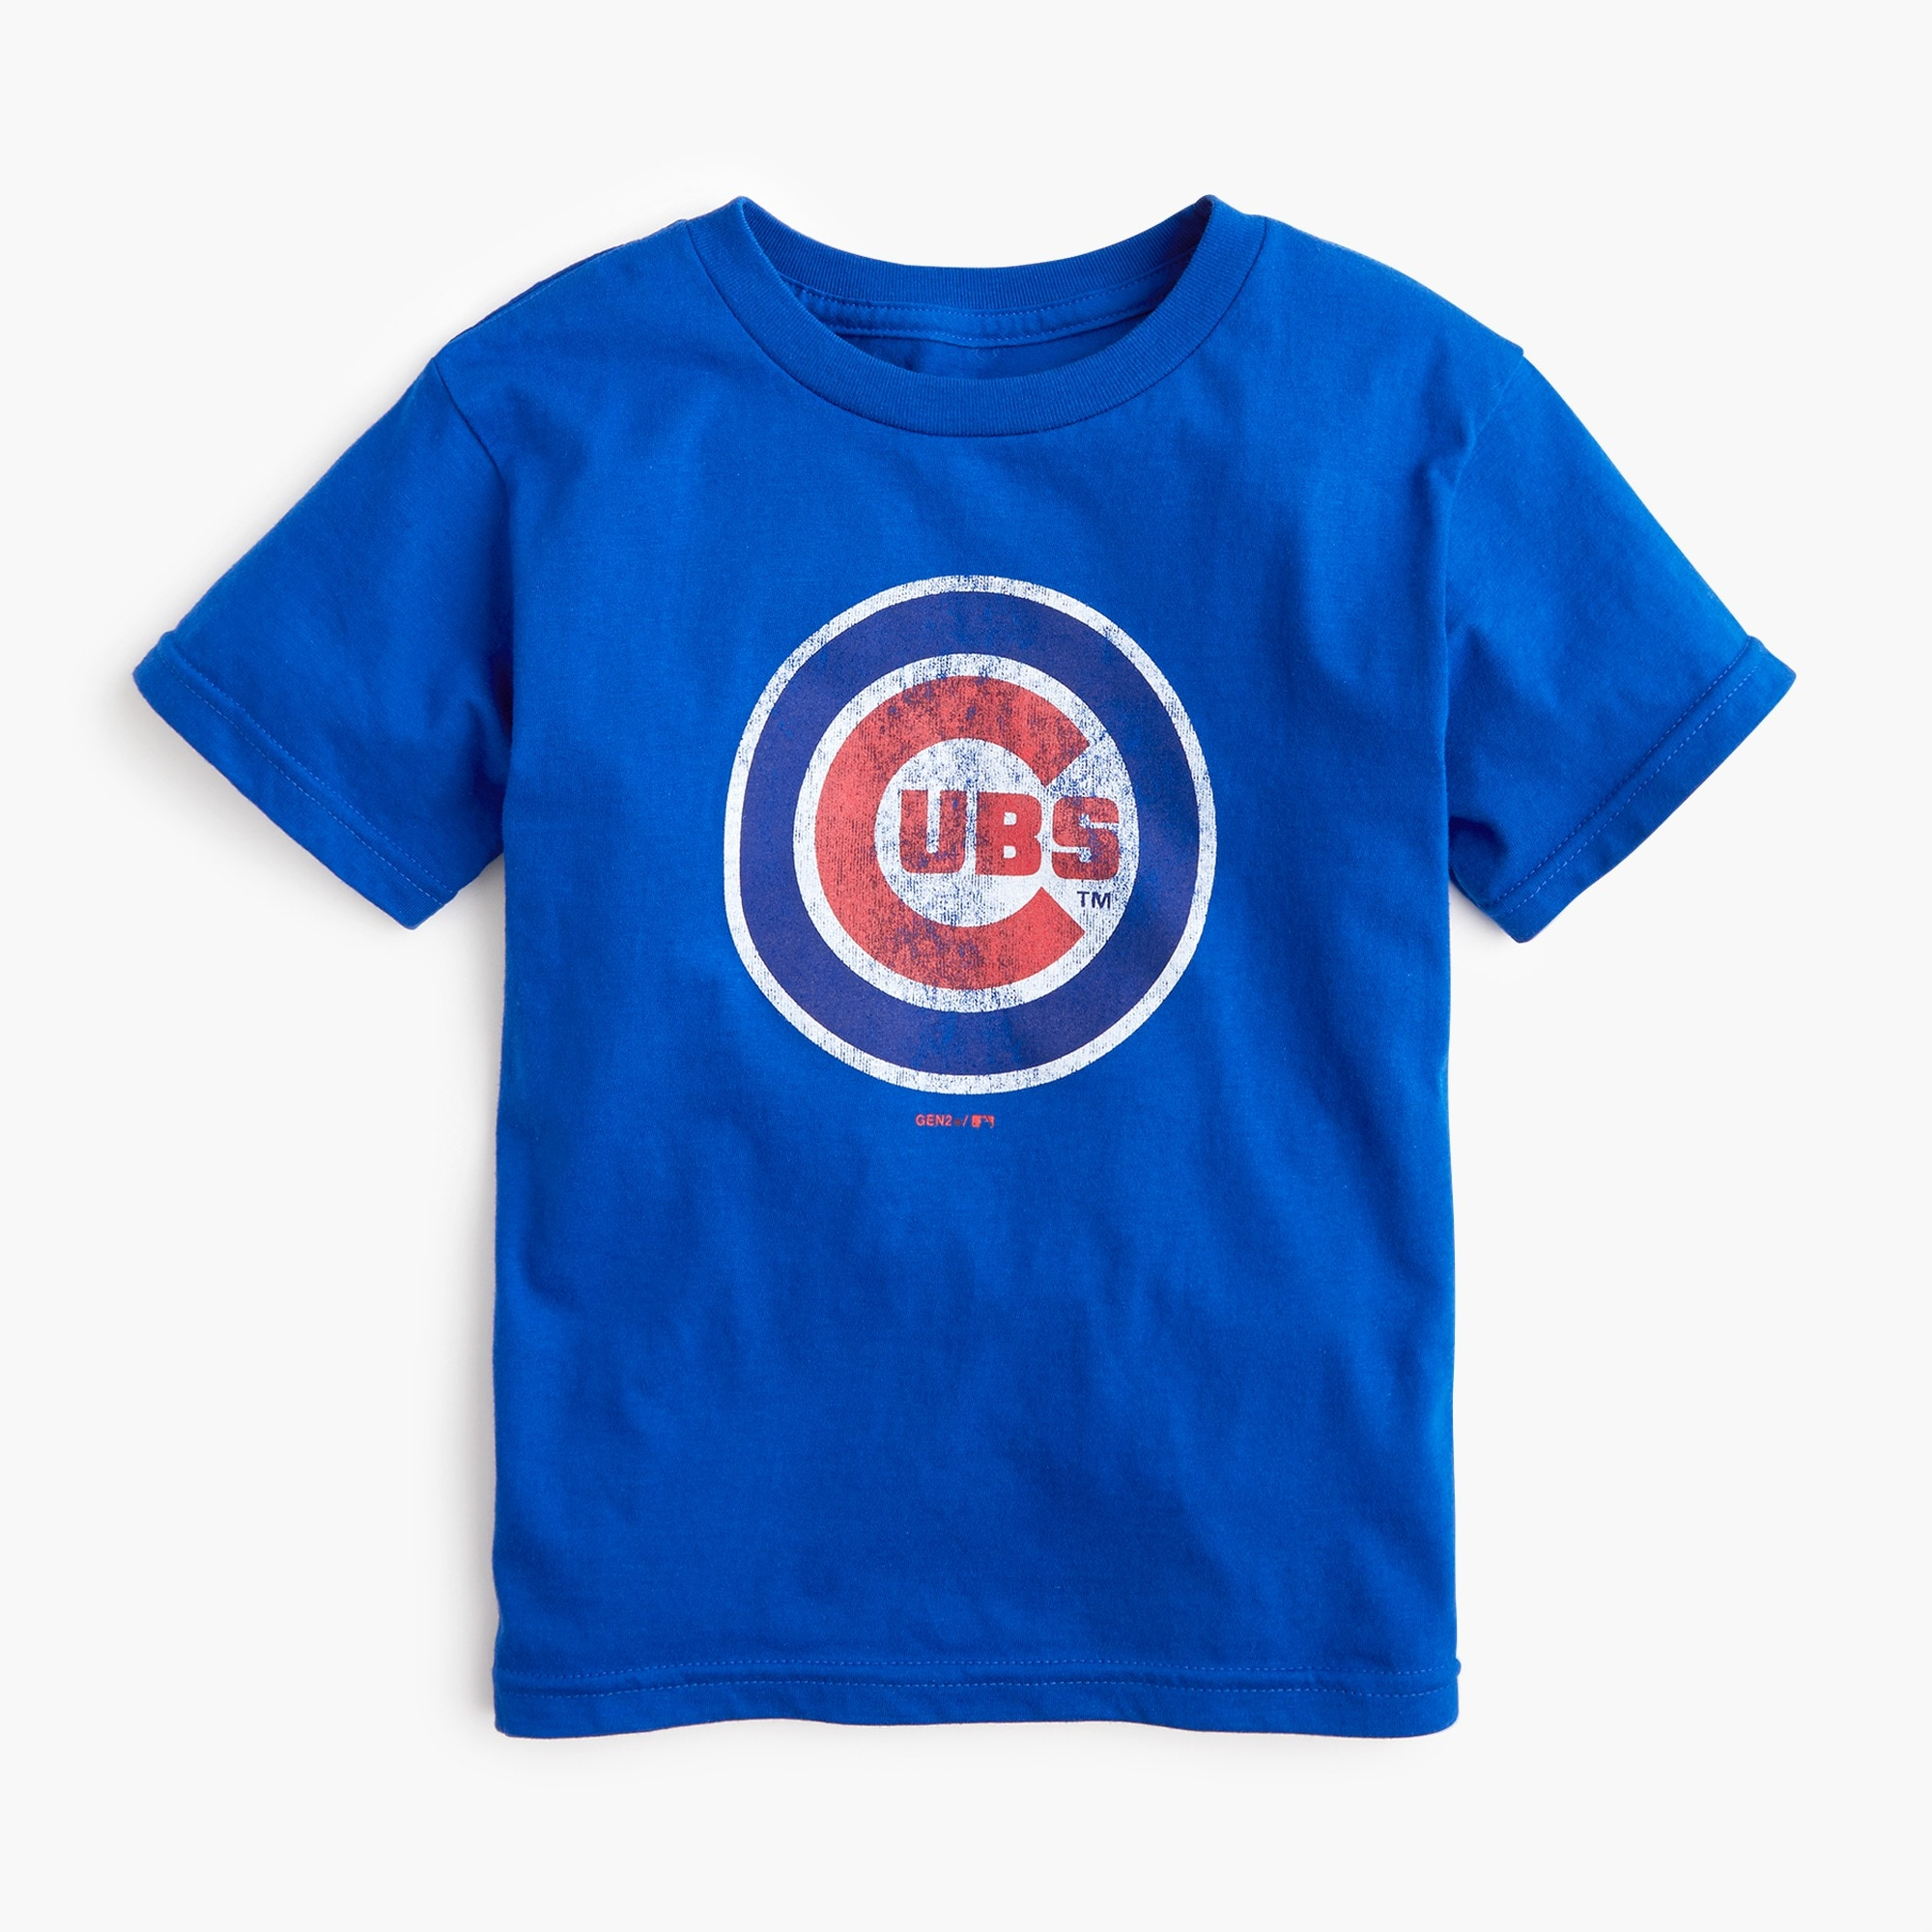 Image 1 for Kids' Chicago Cubs T-shirt in larger sizes